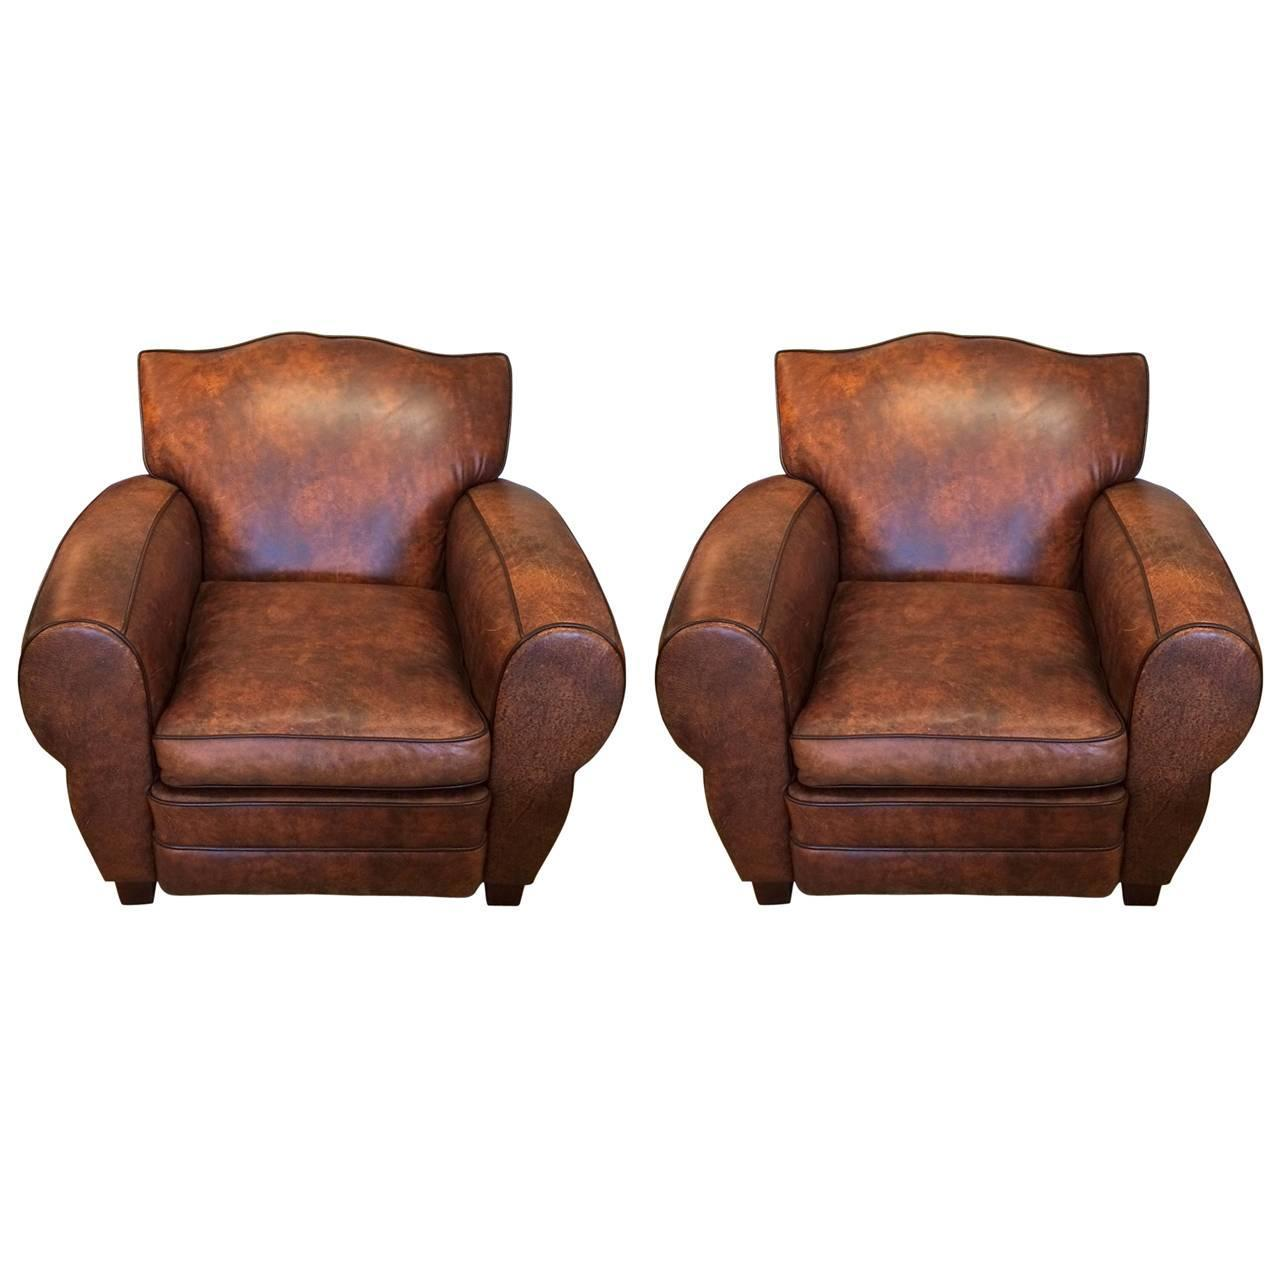 Pair of Luscious Brown Leather Club Chairs at 1stdibs